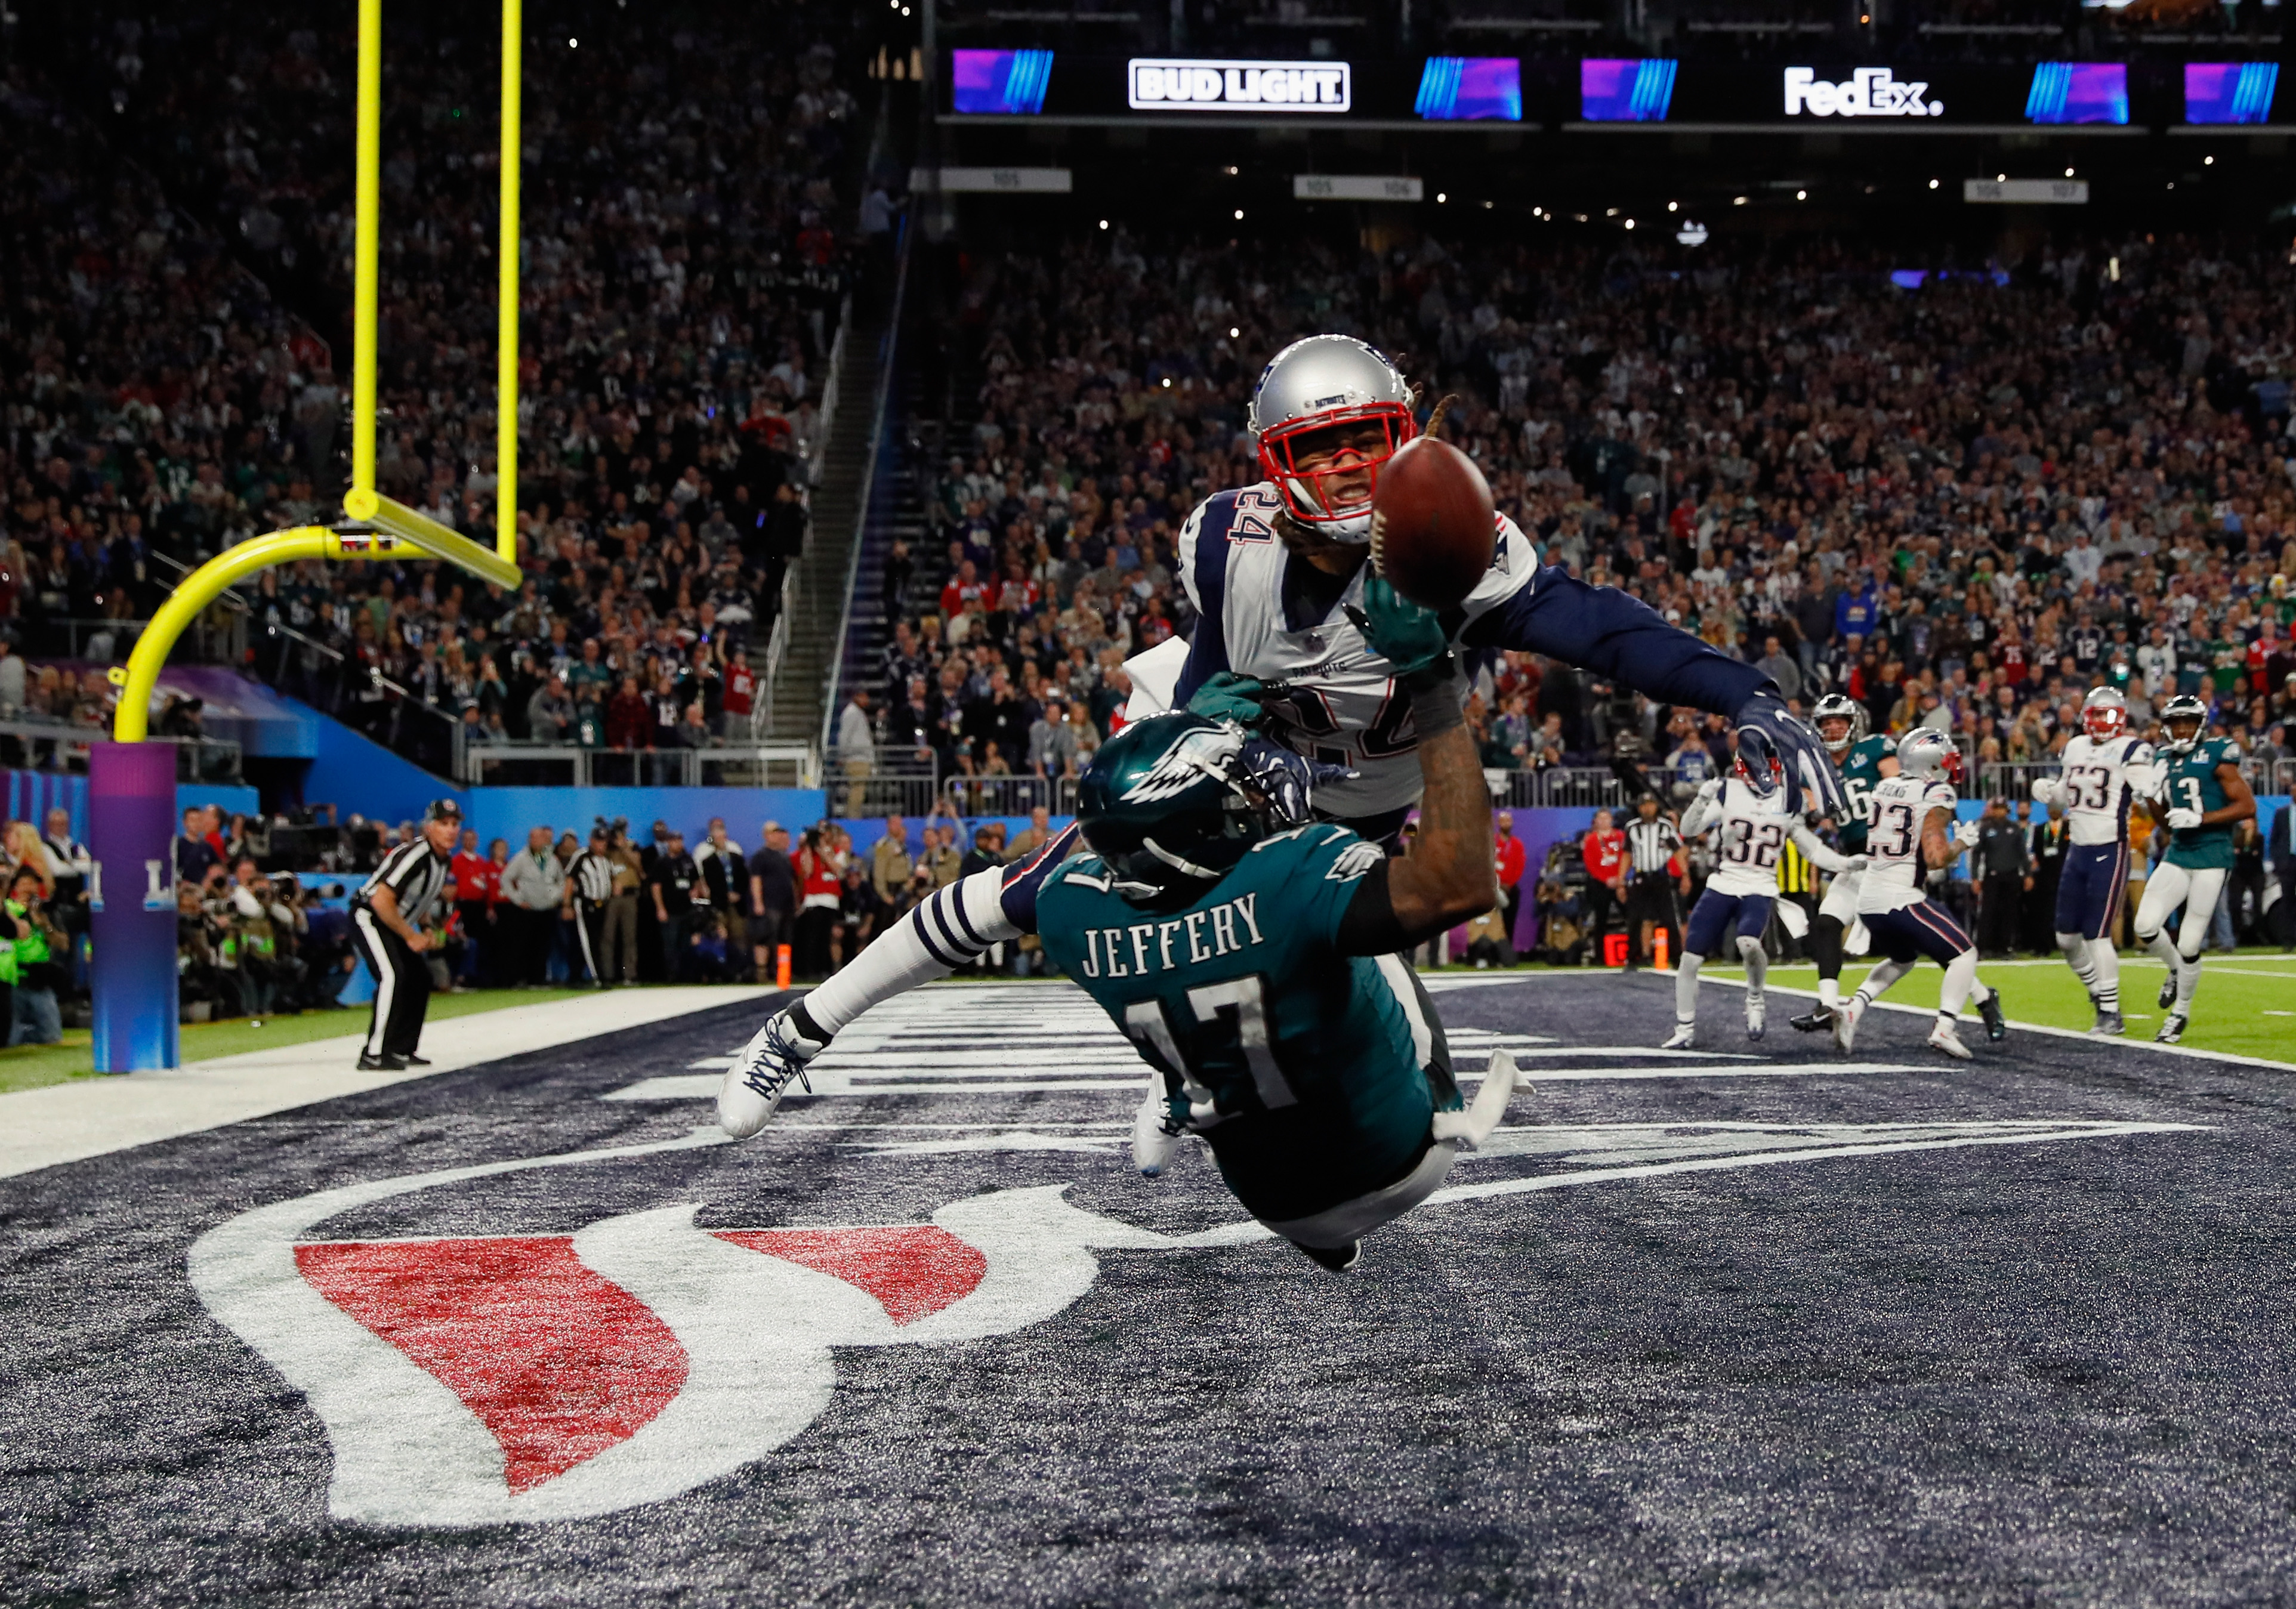 Alshon Jeffery of the Philadelphia Eagles misses the pass attempt under pressure from Stephon Gilmore of the New England Patriots in 2018